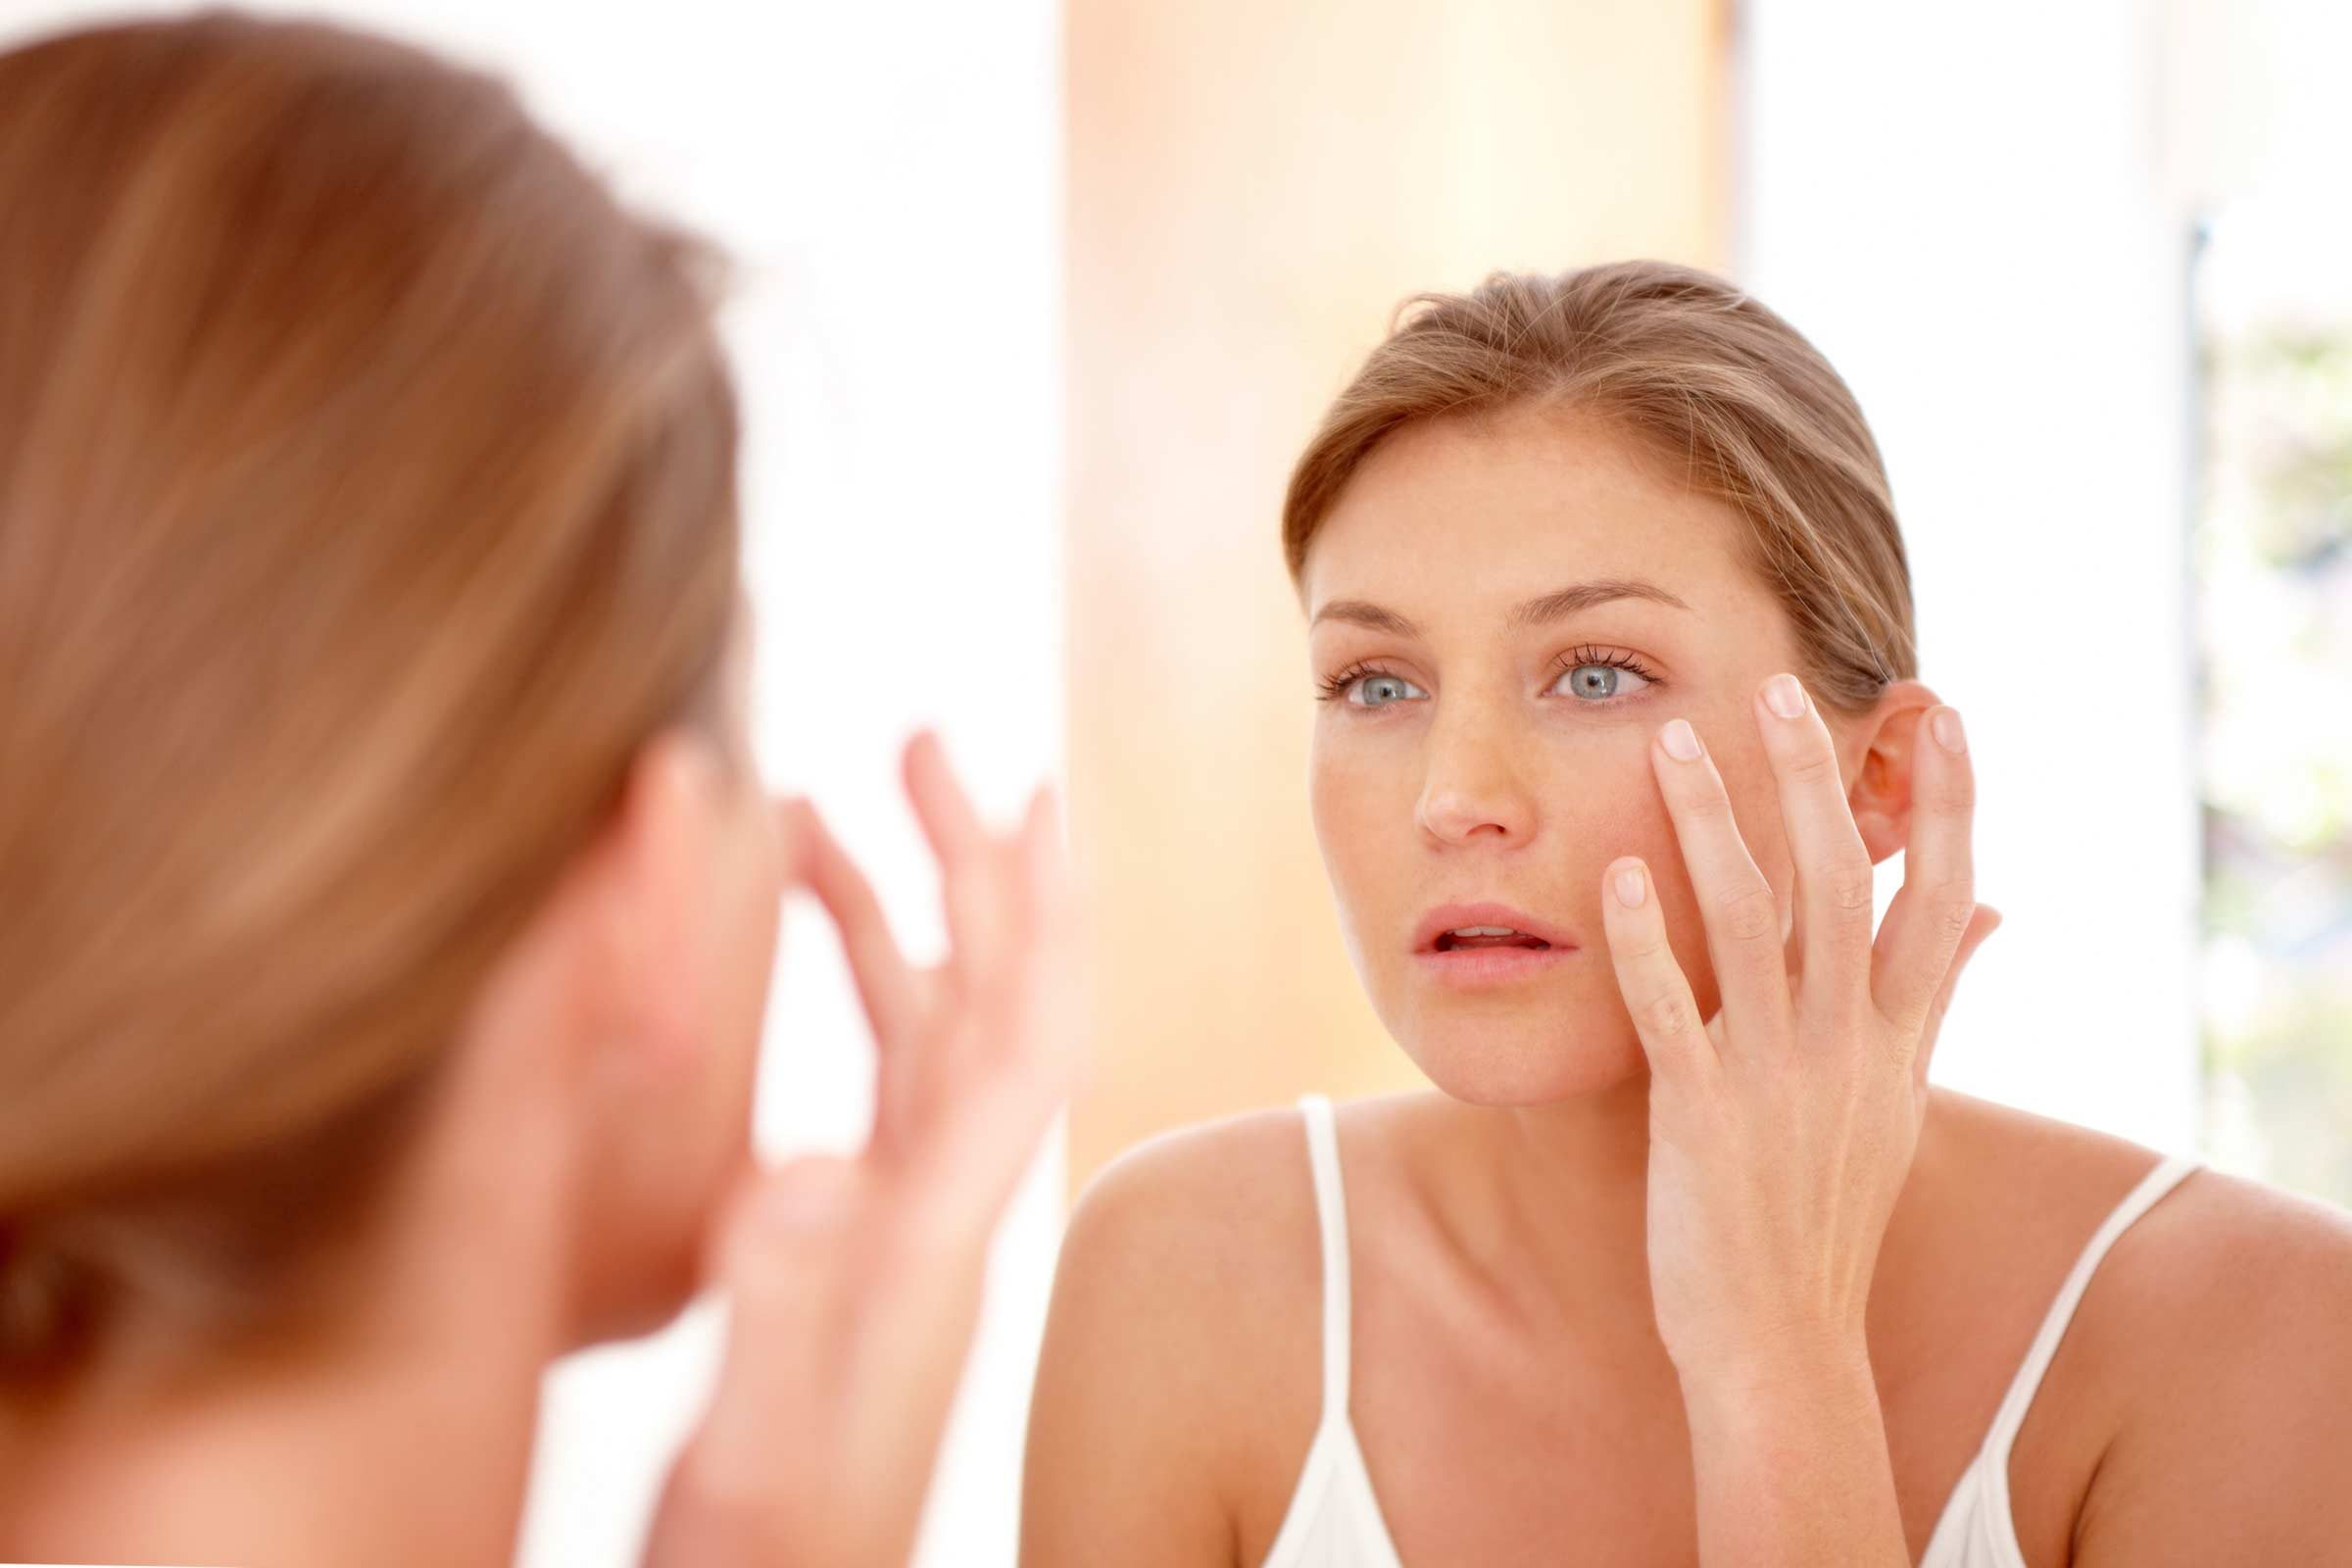 How to look younger 9 tricks dermatologists wont share readers dont switch products so often ccuart Choice Image